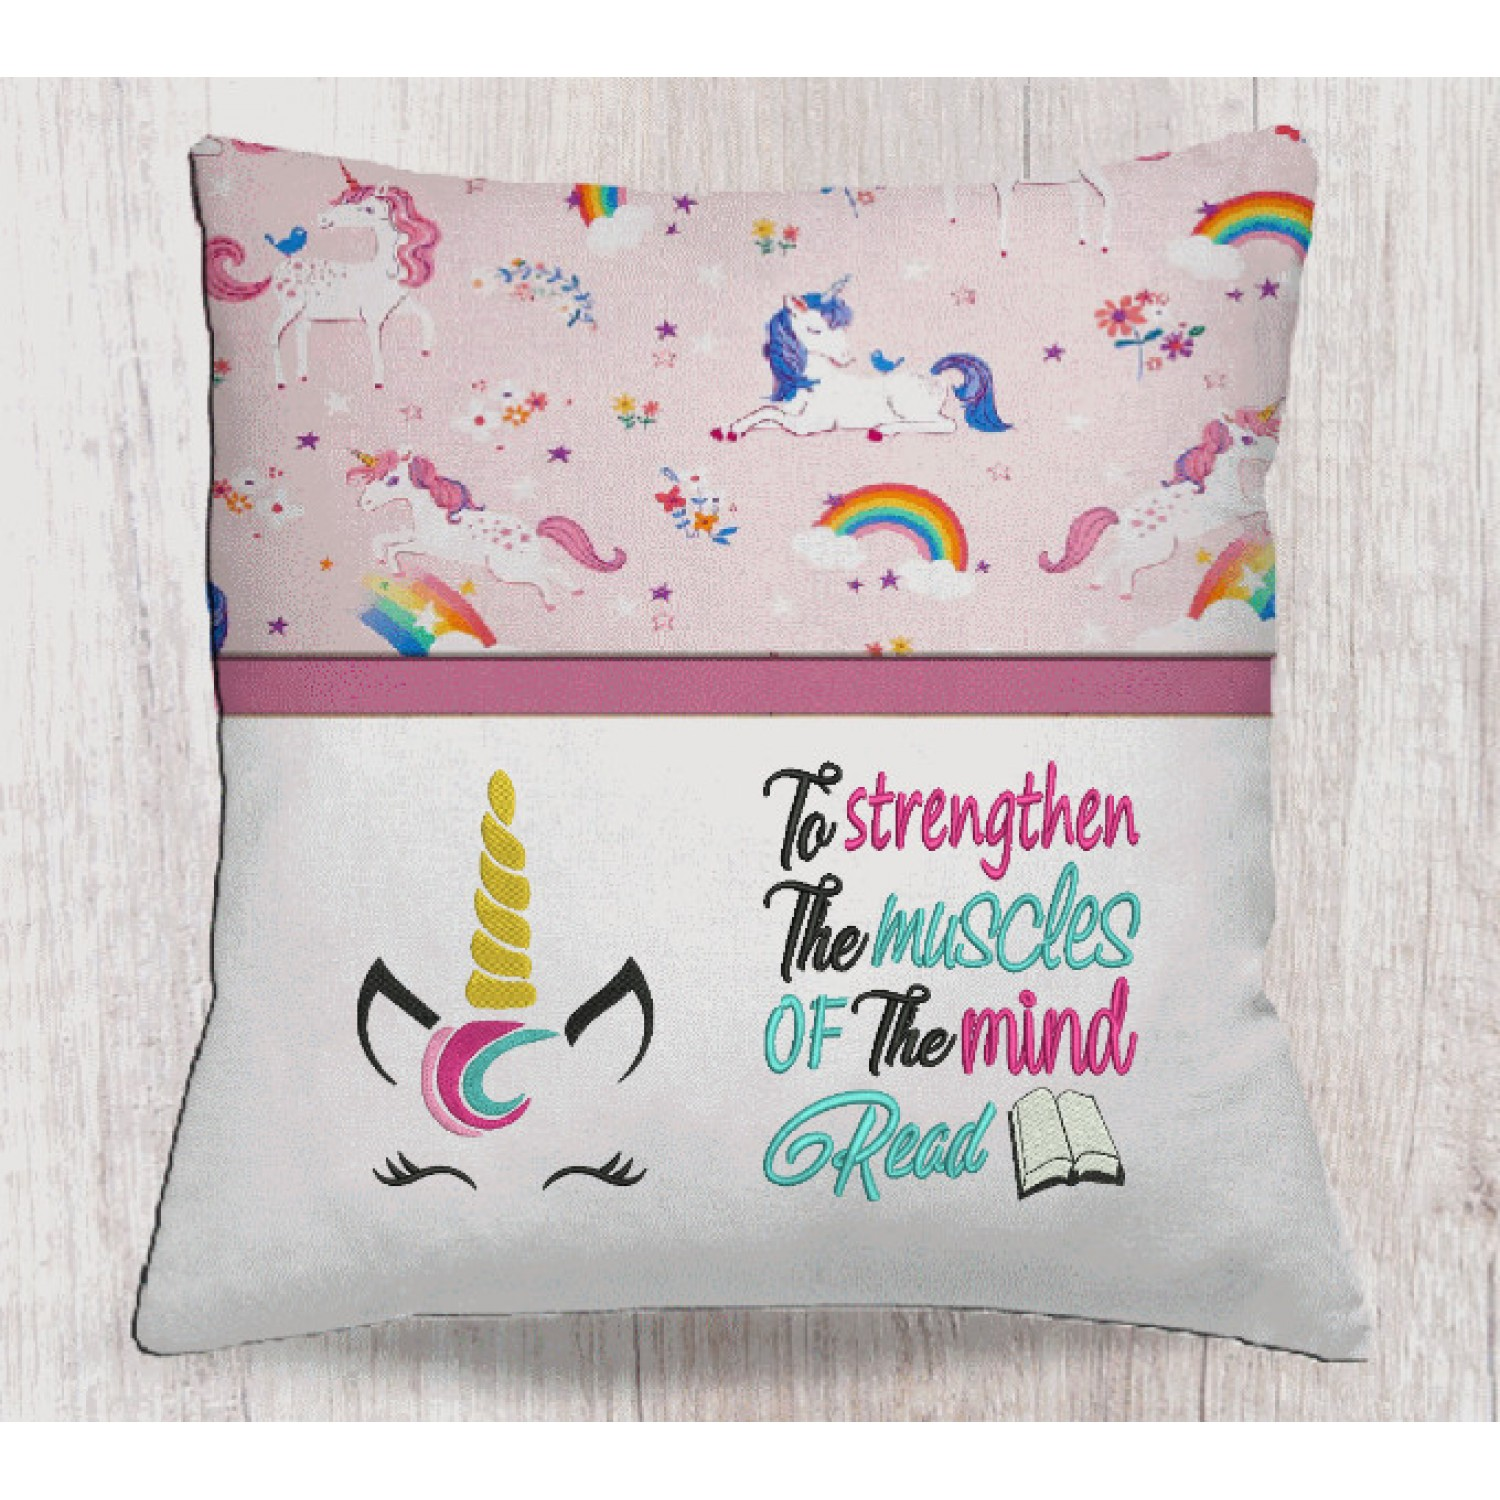 Unicorn jeune embroidery with To strengthen